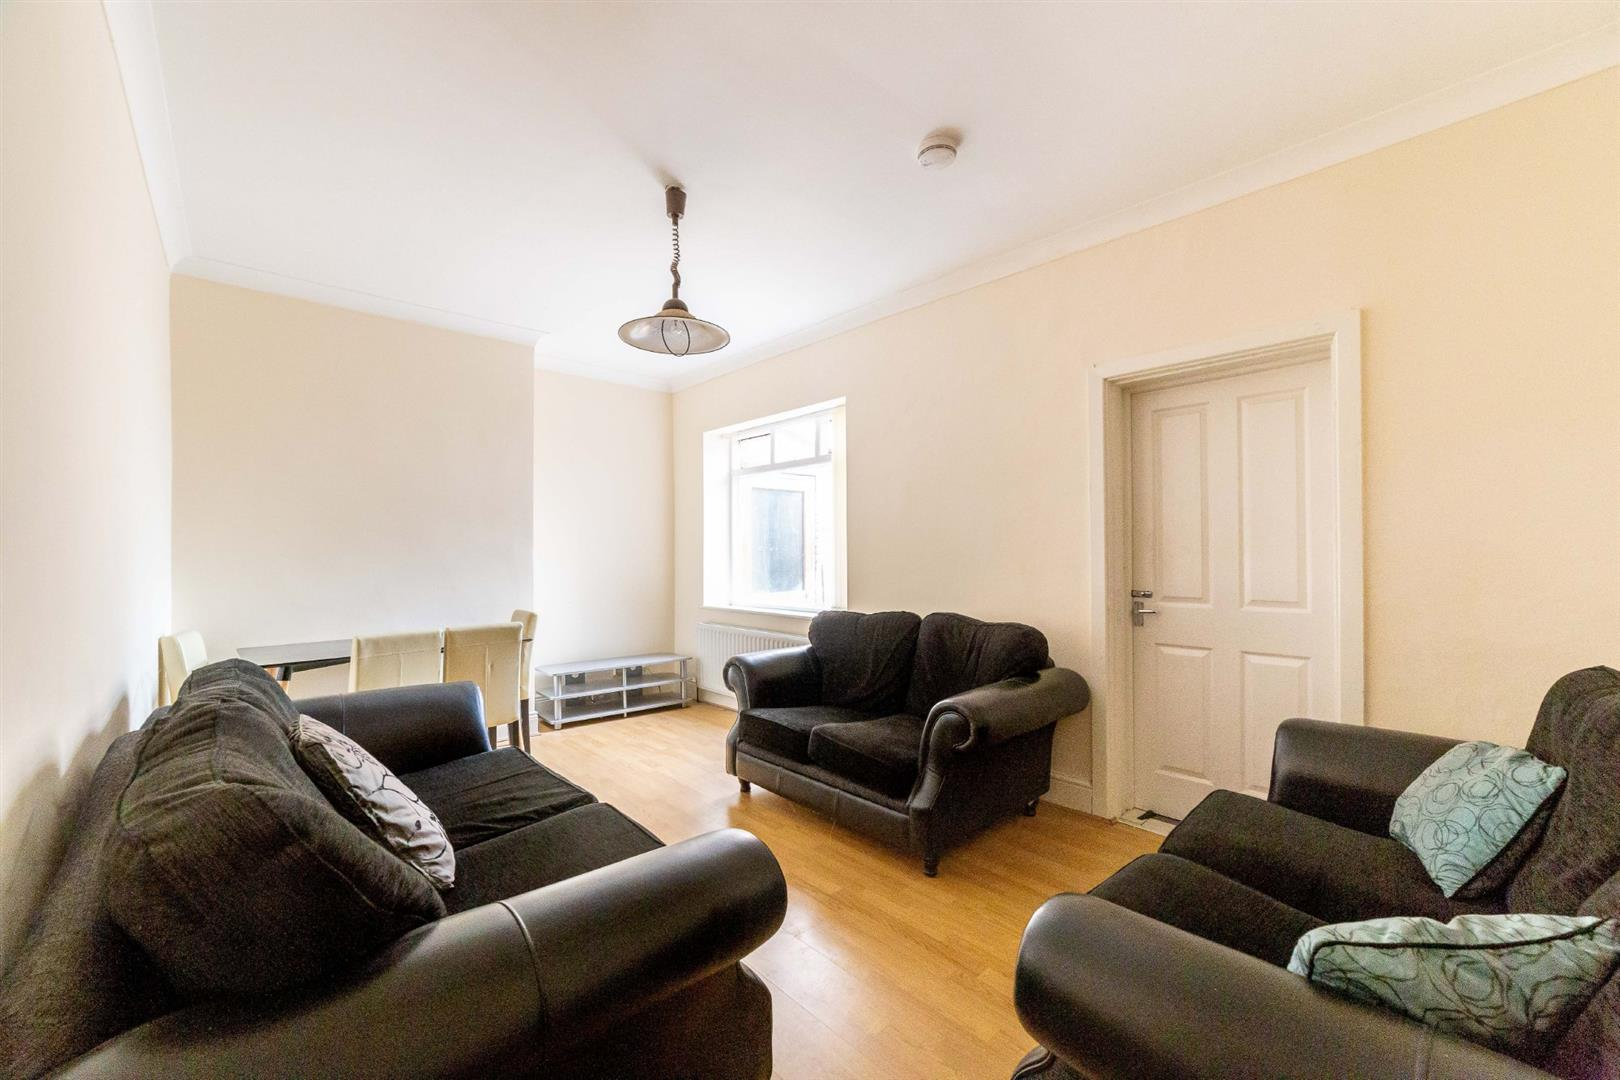 5 bed semi-detached house to rent in Newcastle Upon Tyne, NE6 5QQ 0